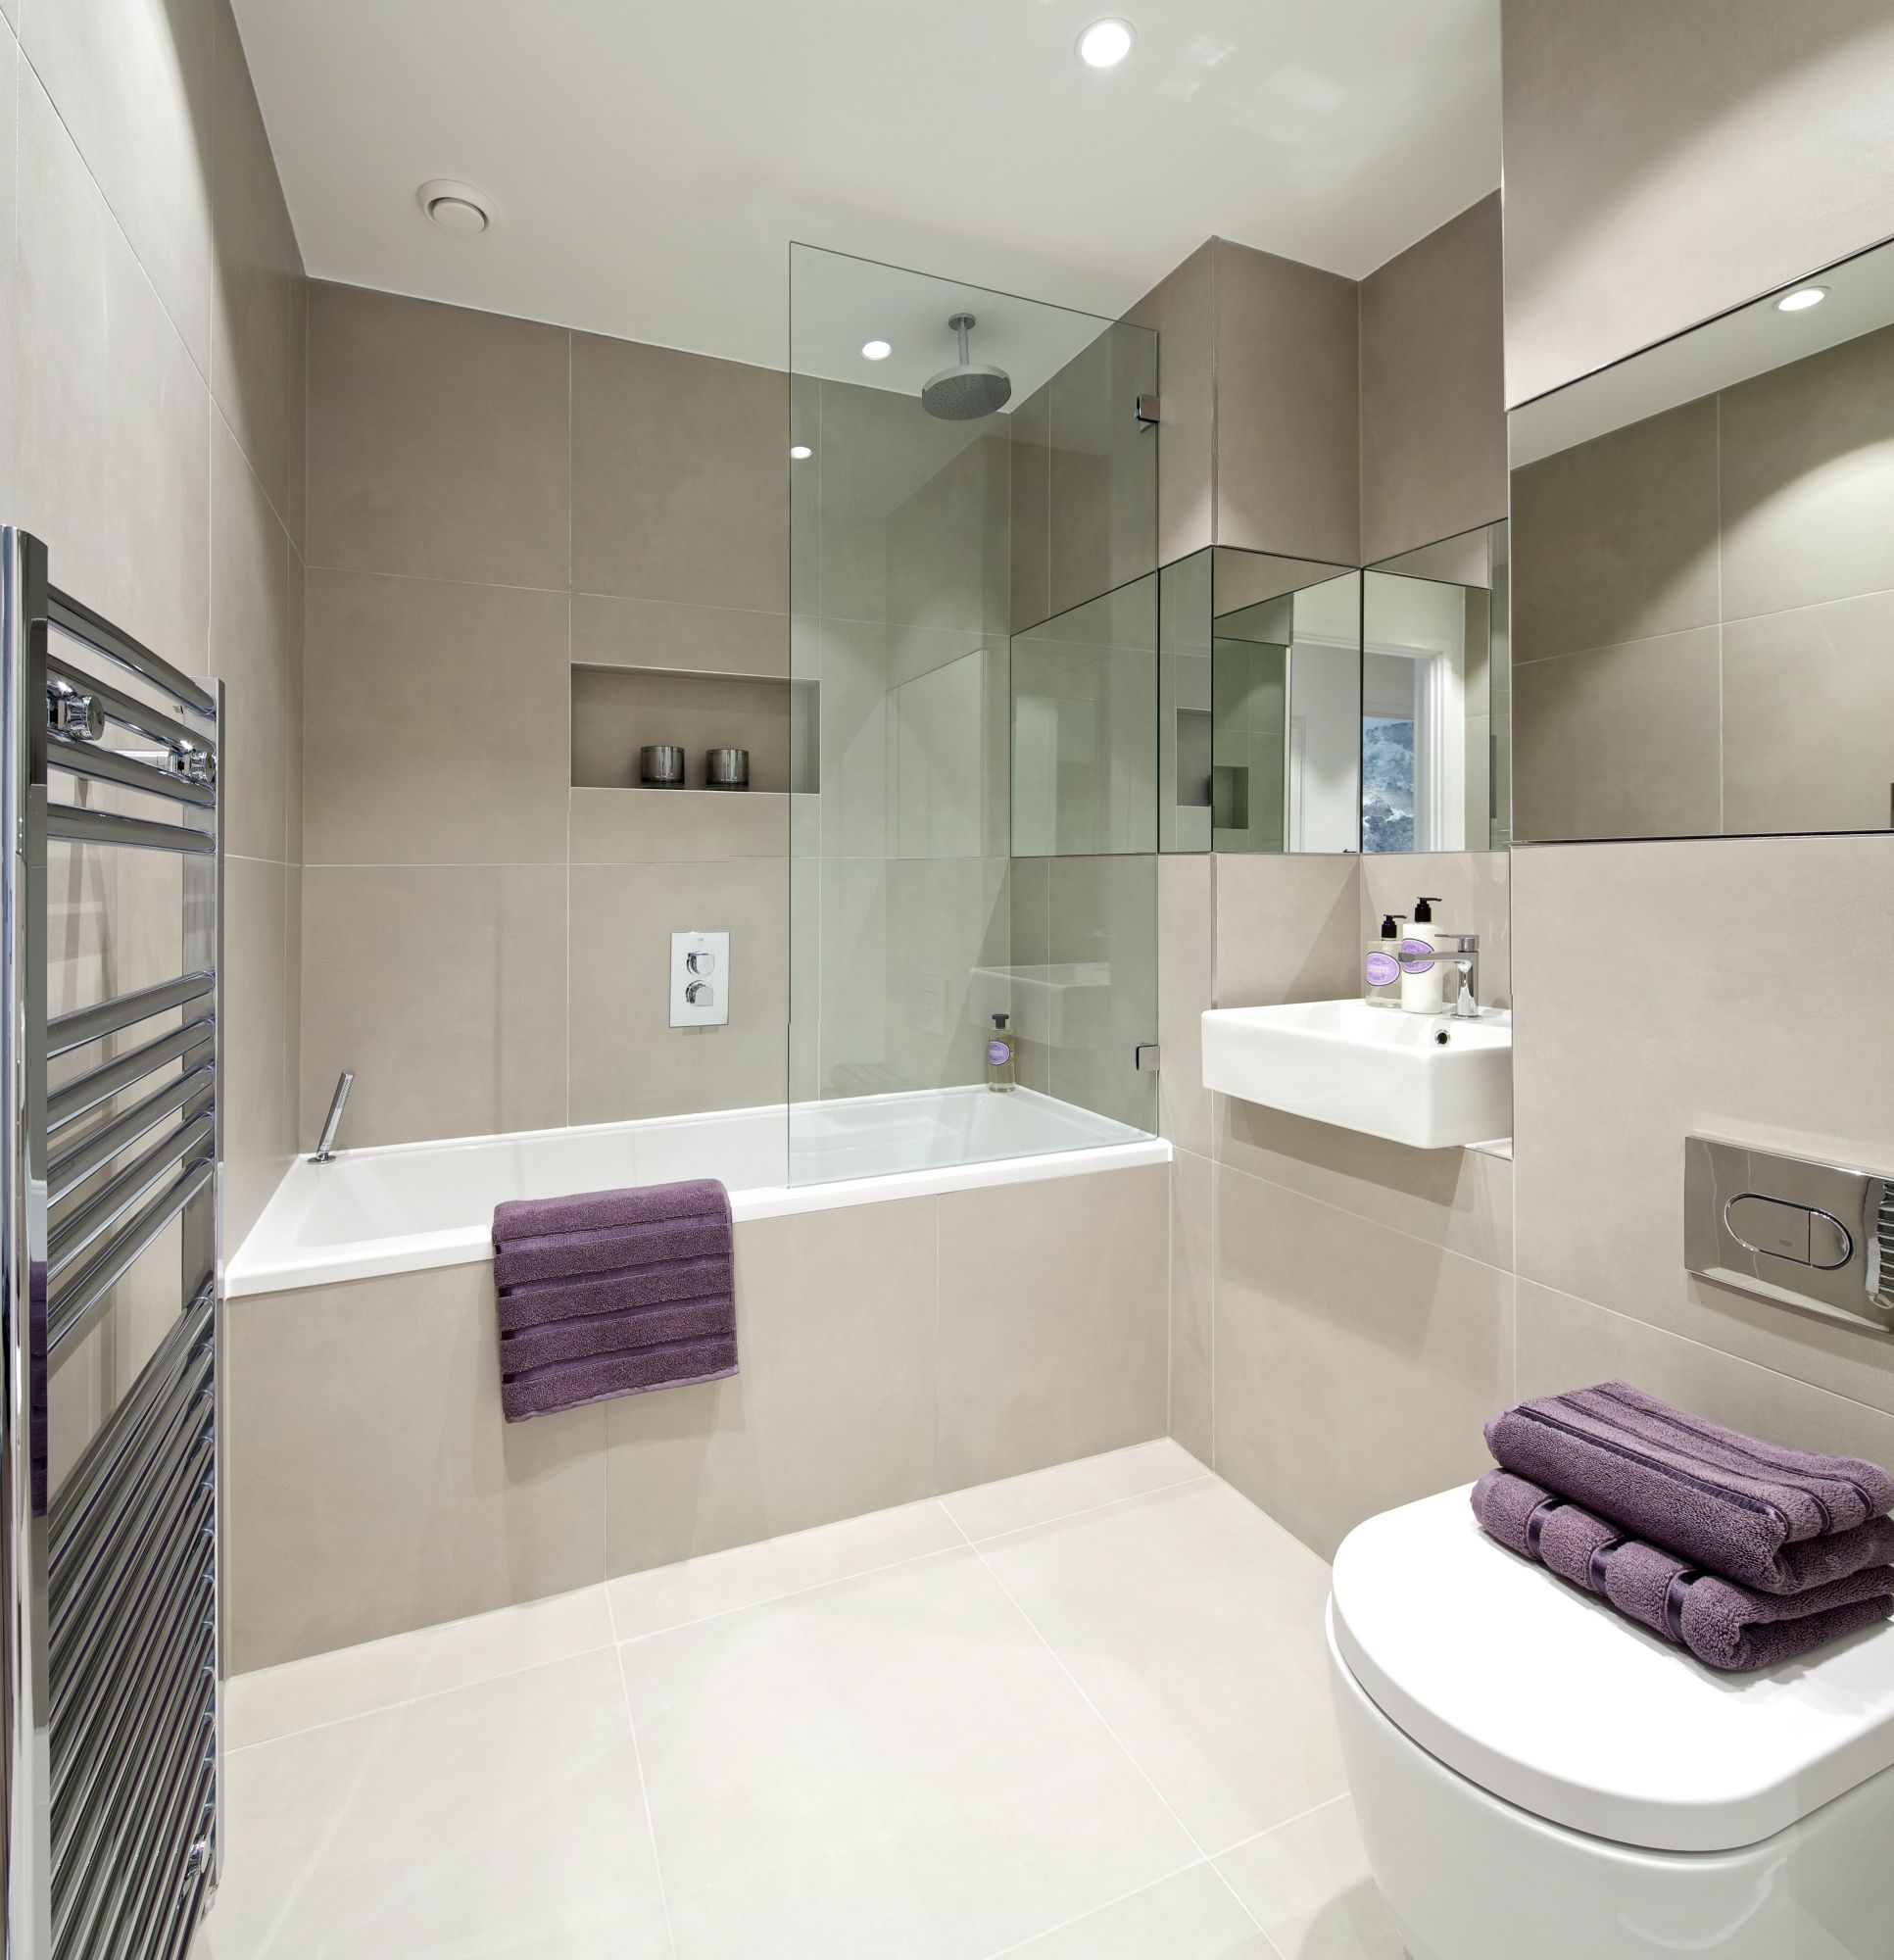 Stunning home interiors bathroom another stunning show for Small bathroom interior